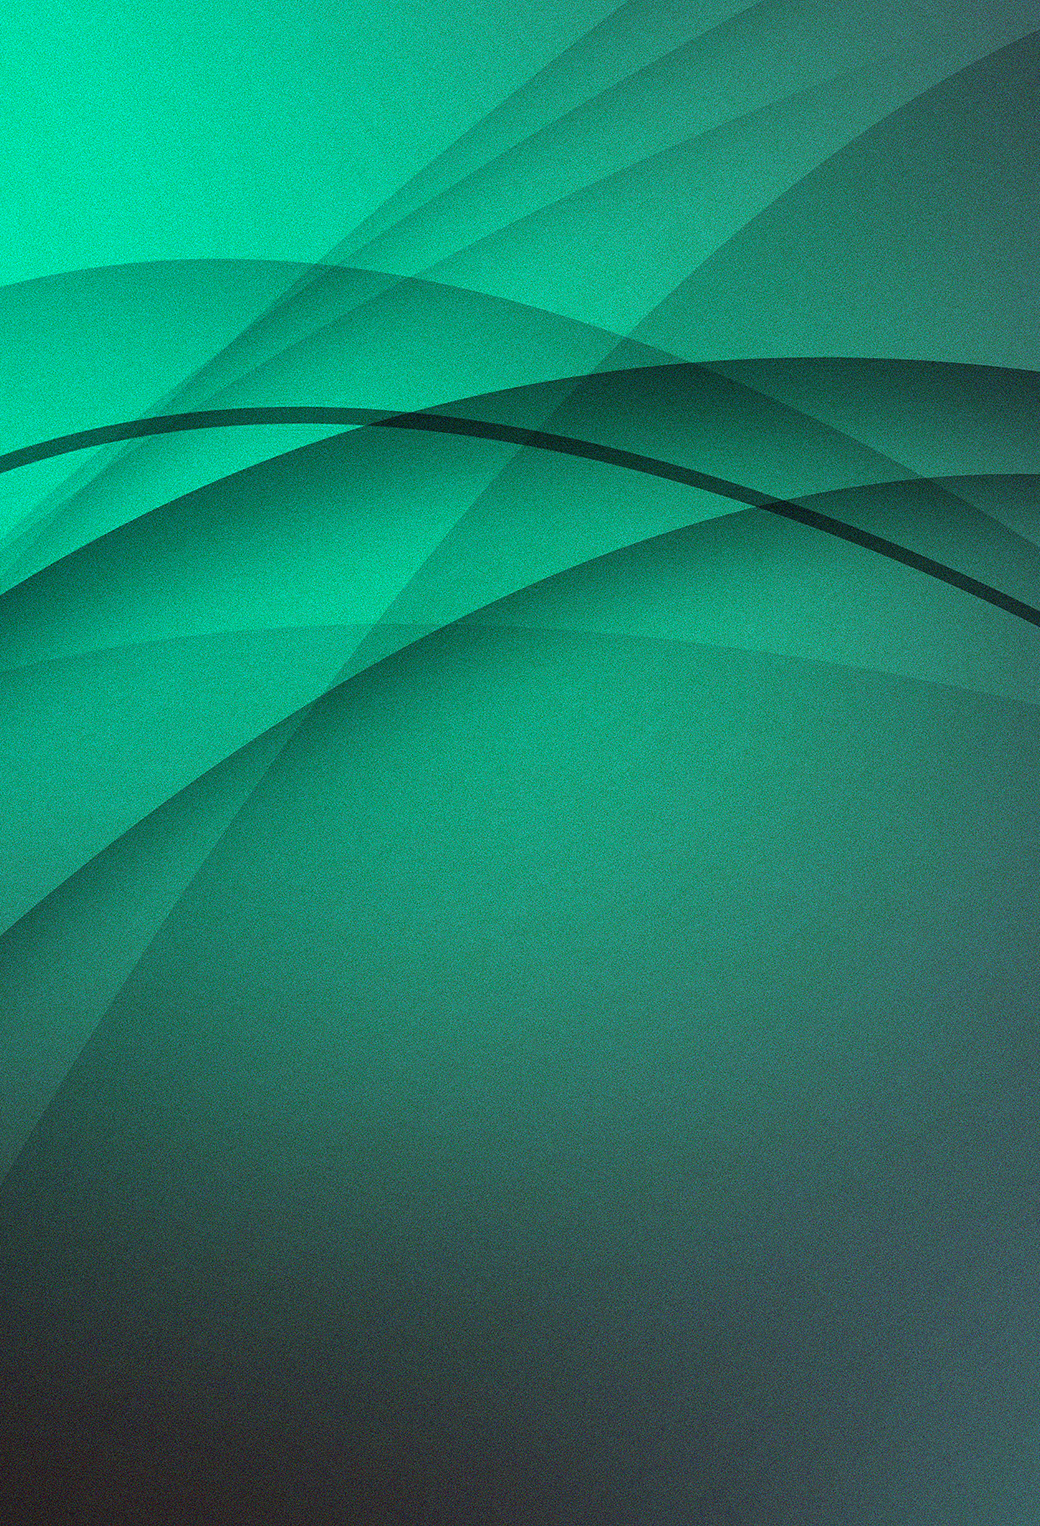 Green Curves 3Wallpapers iphone Parallax Green Curves